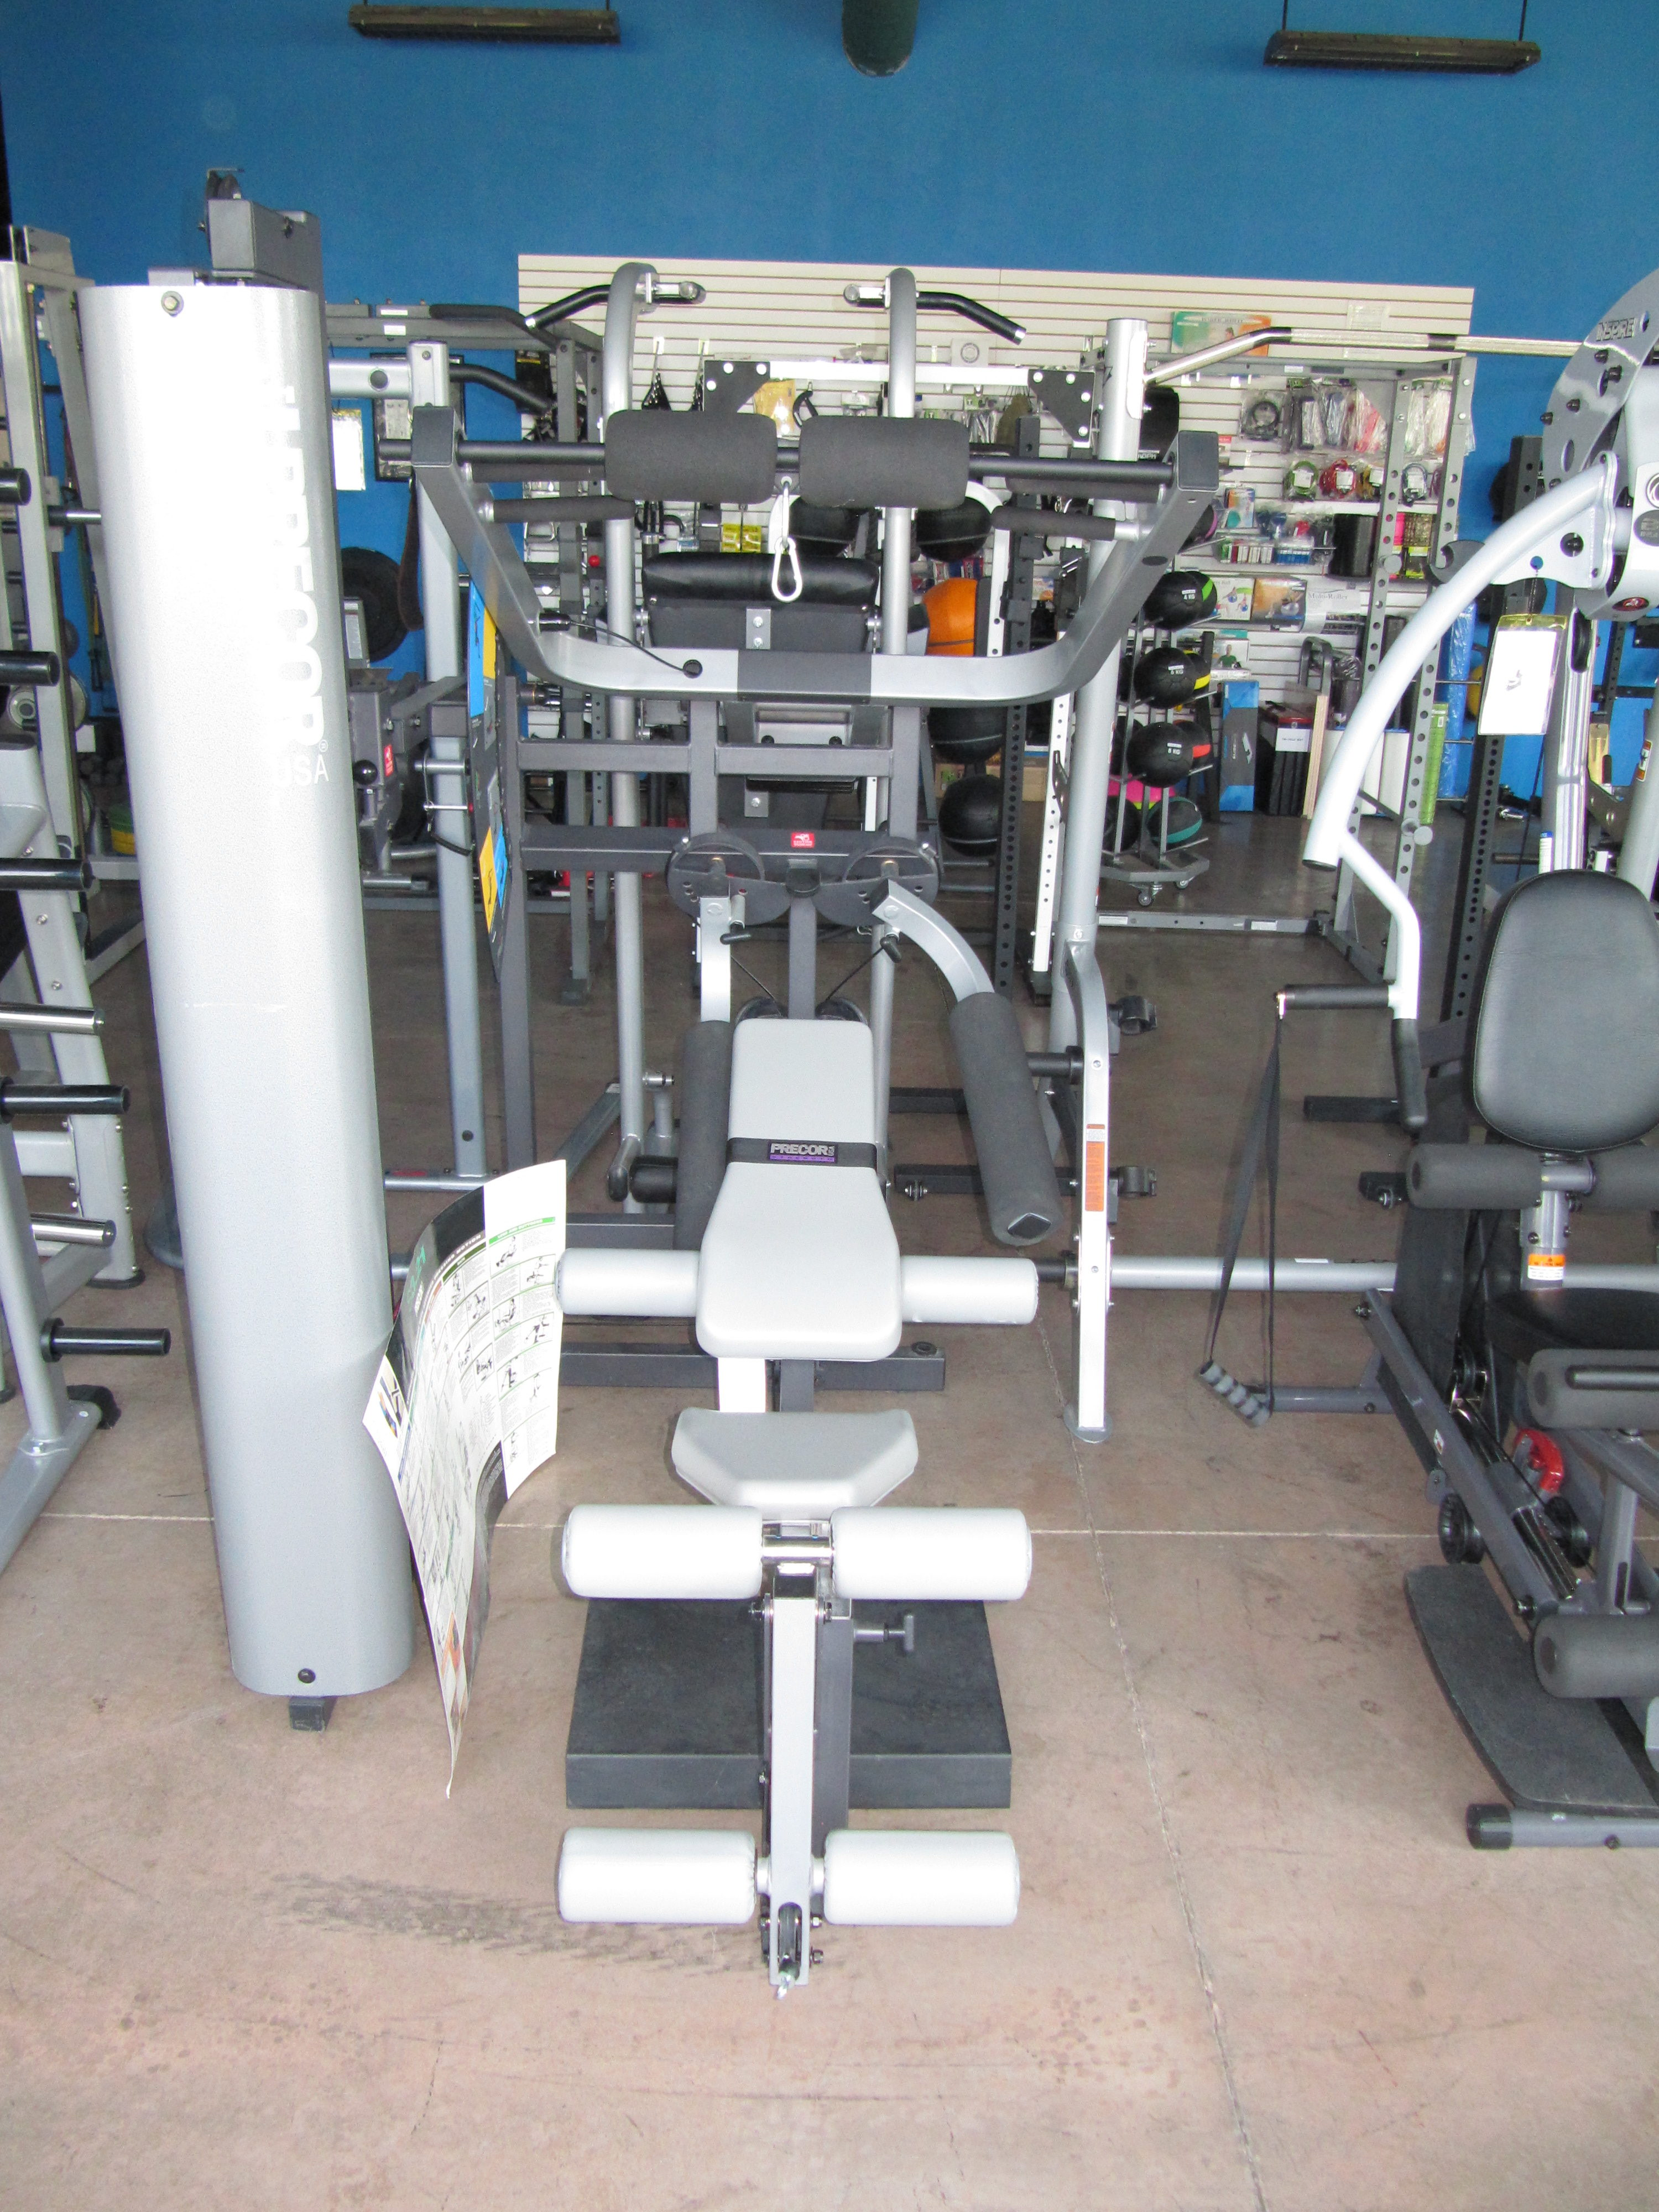 Precor s3 21 home gym pictures